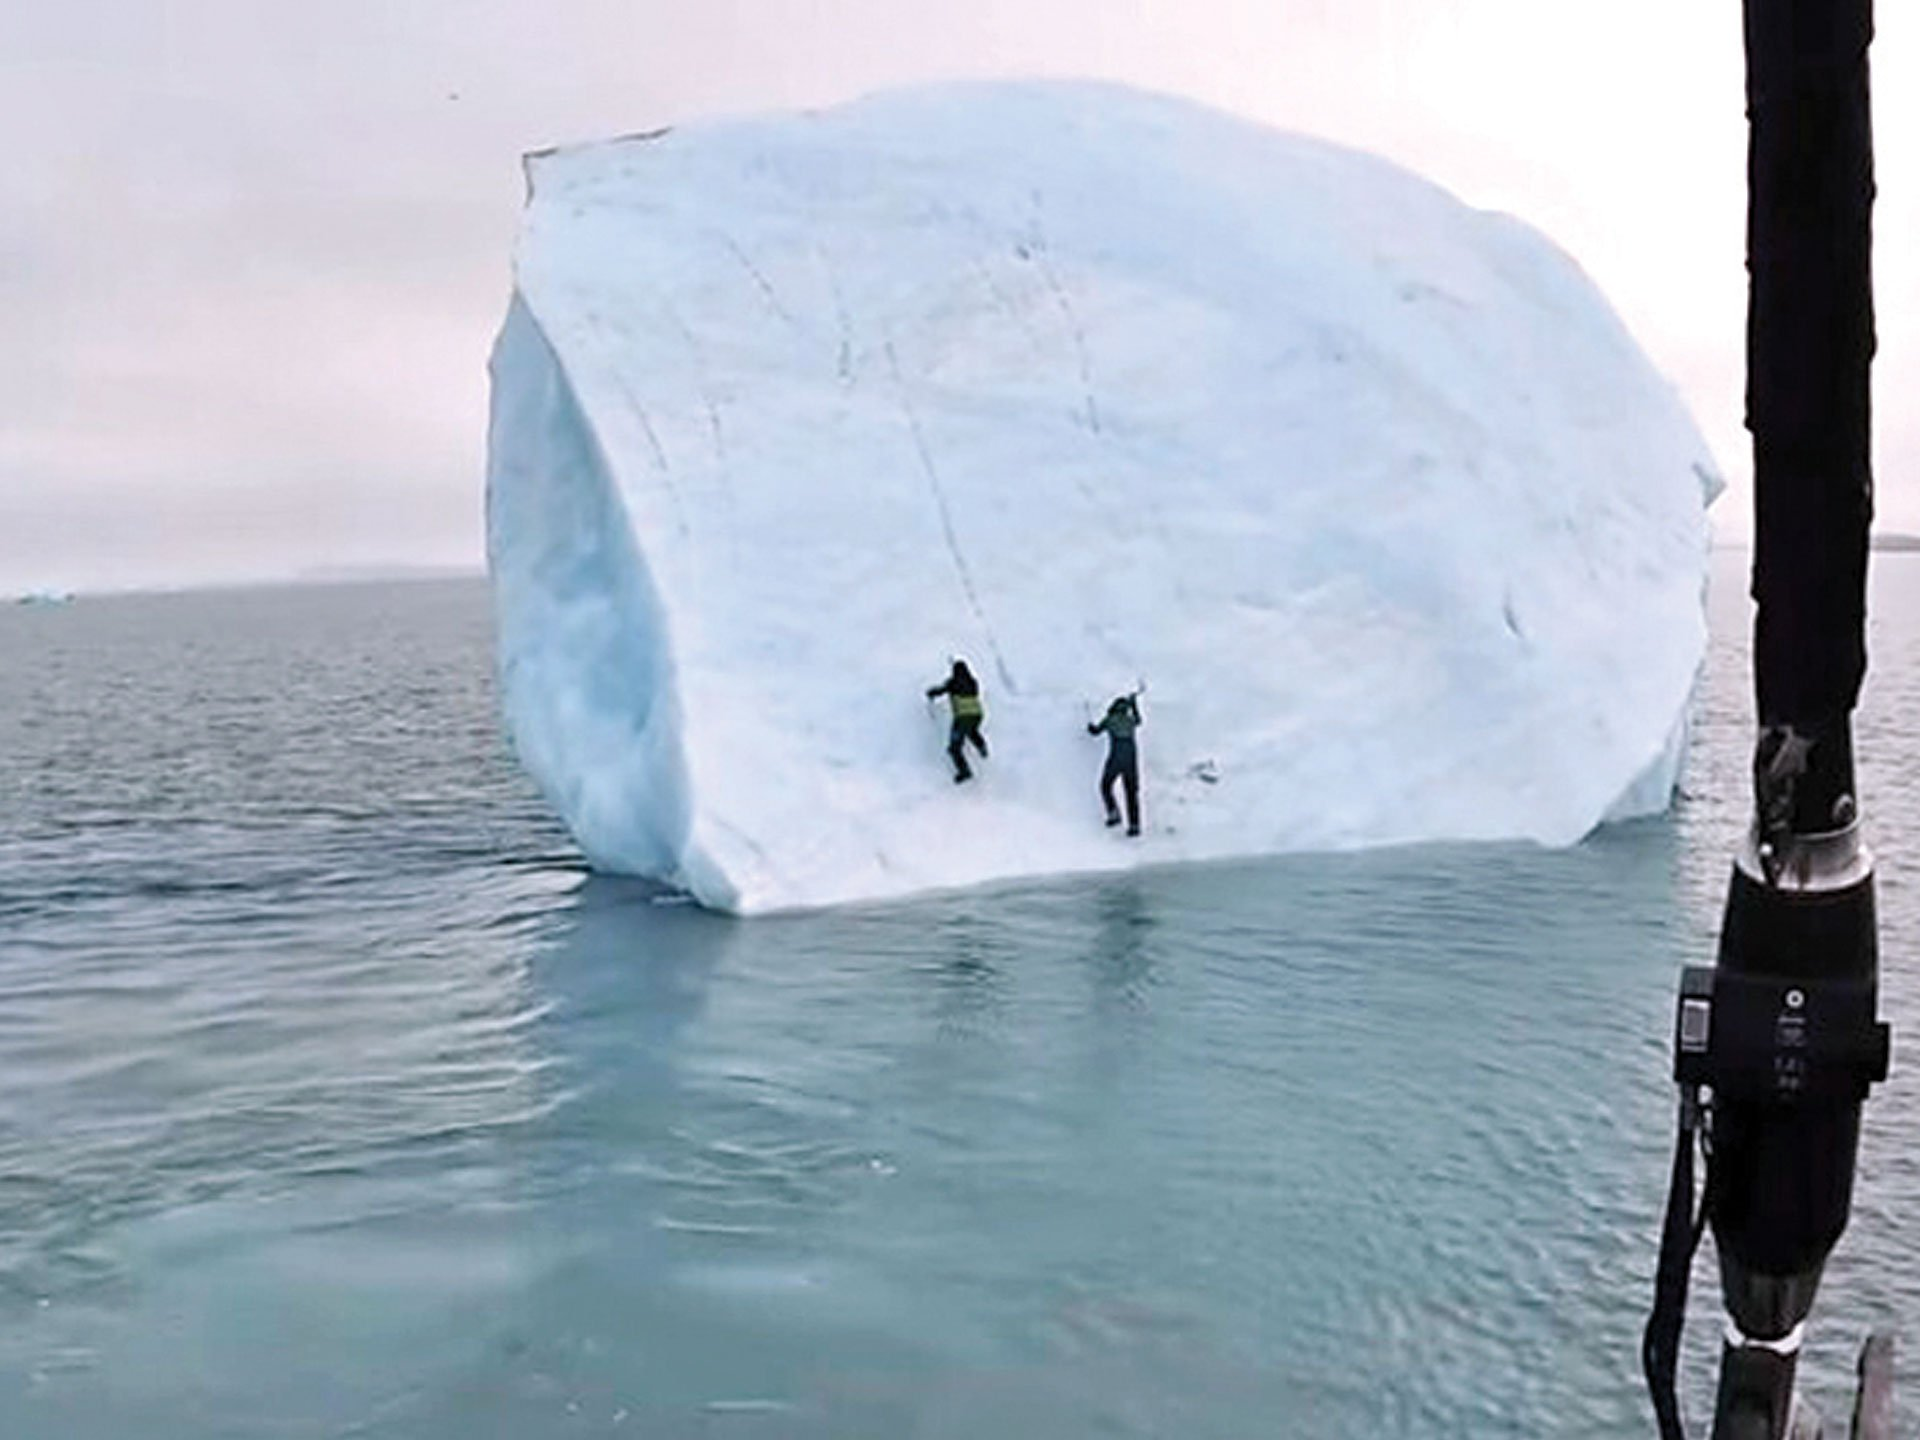 An iceberg turns over on two adventurers in the Arctic Ocean